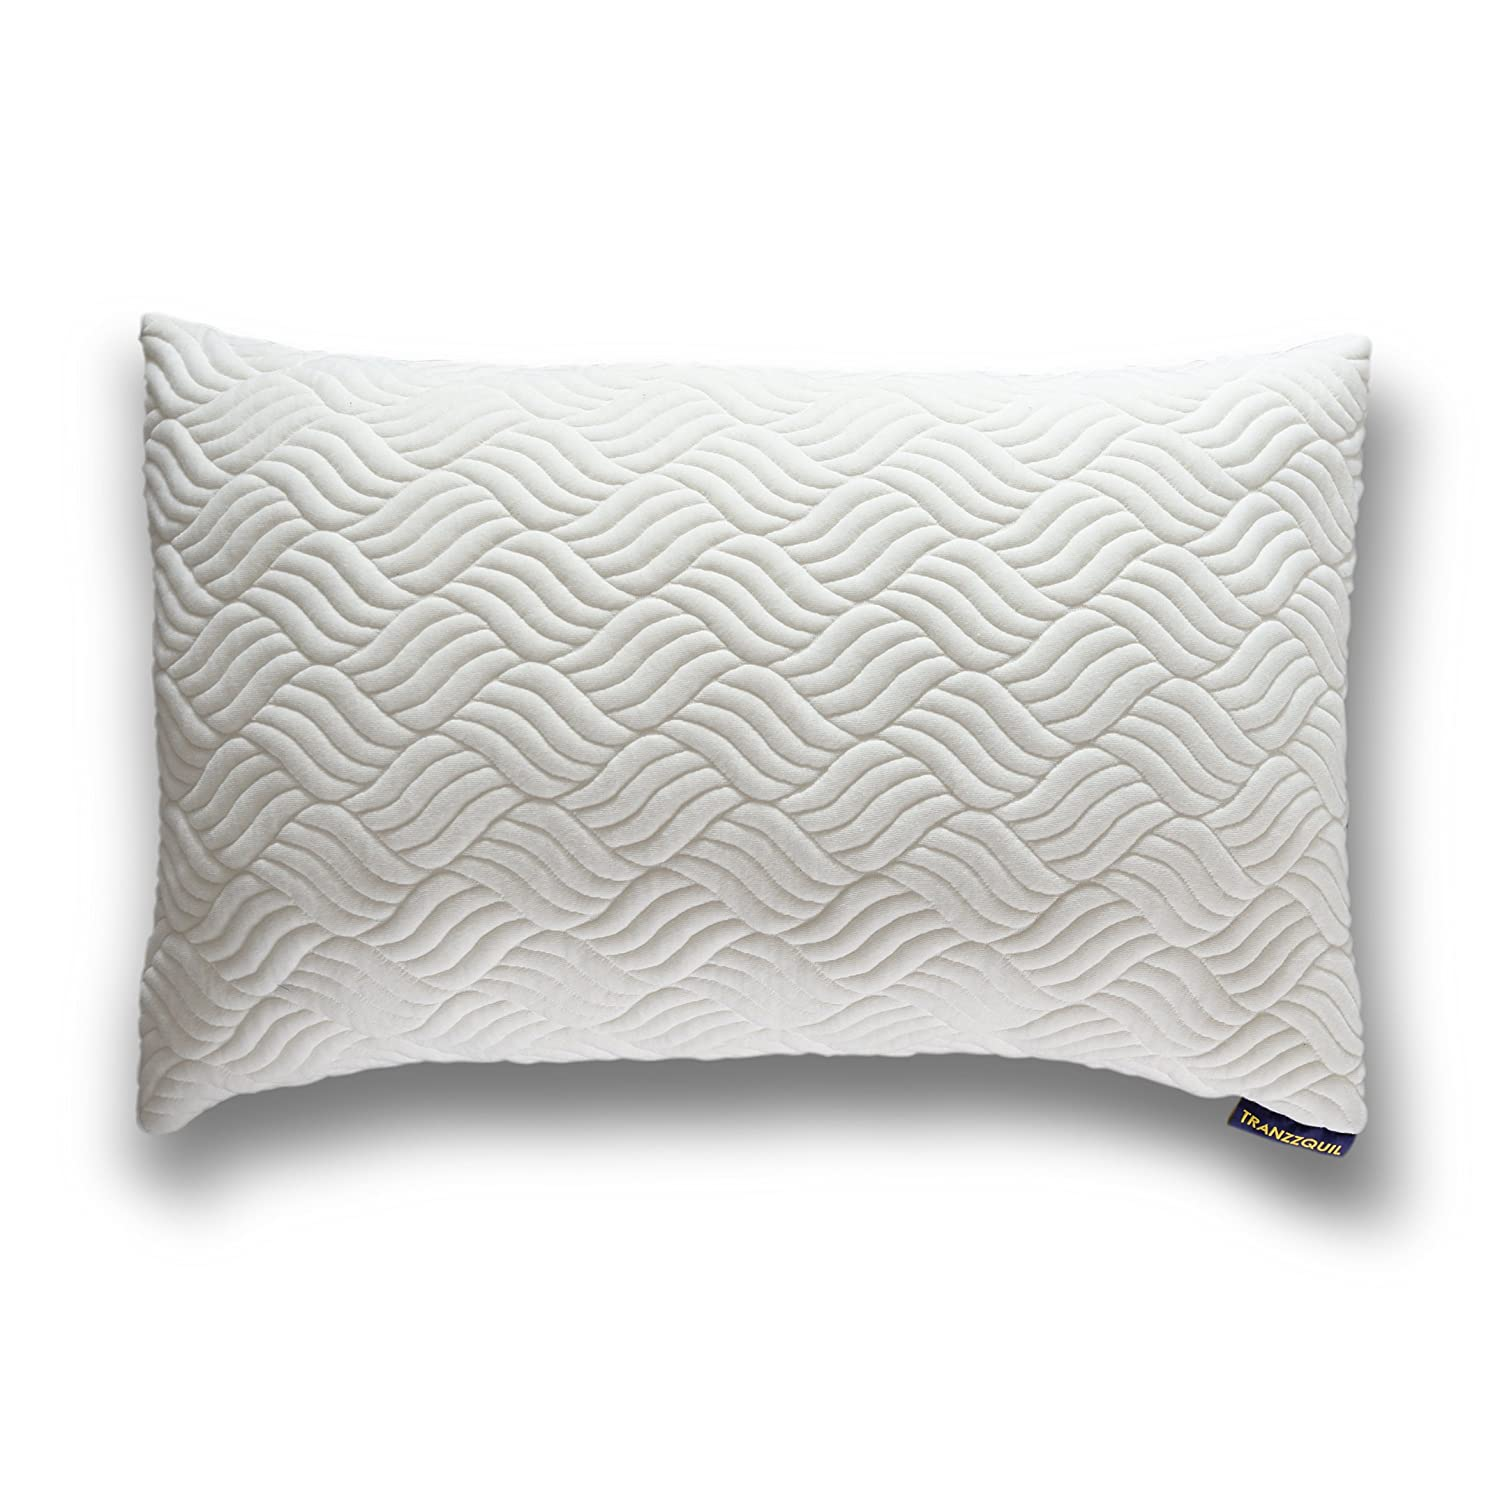 TRANZZQUIL Hypoallergenic Bed Pillows for Sleeping